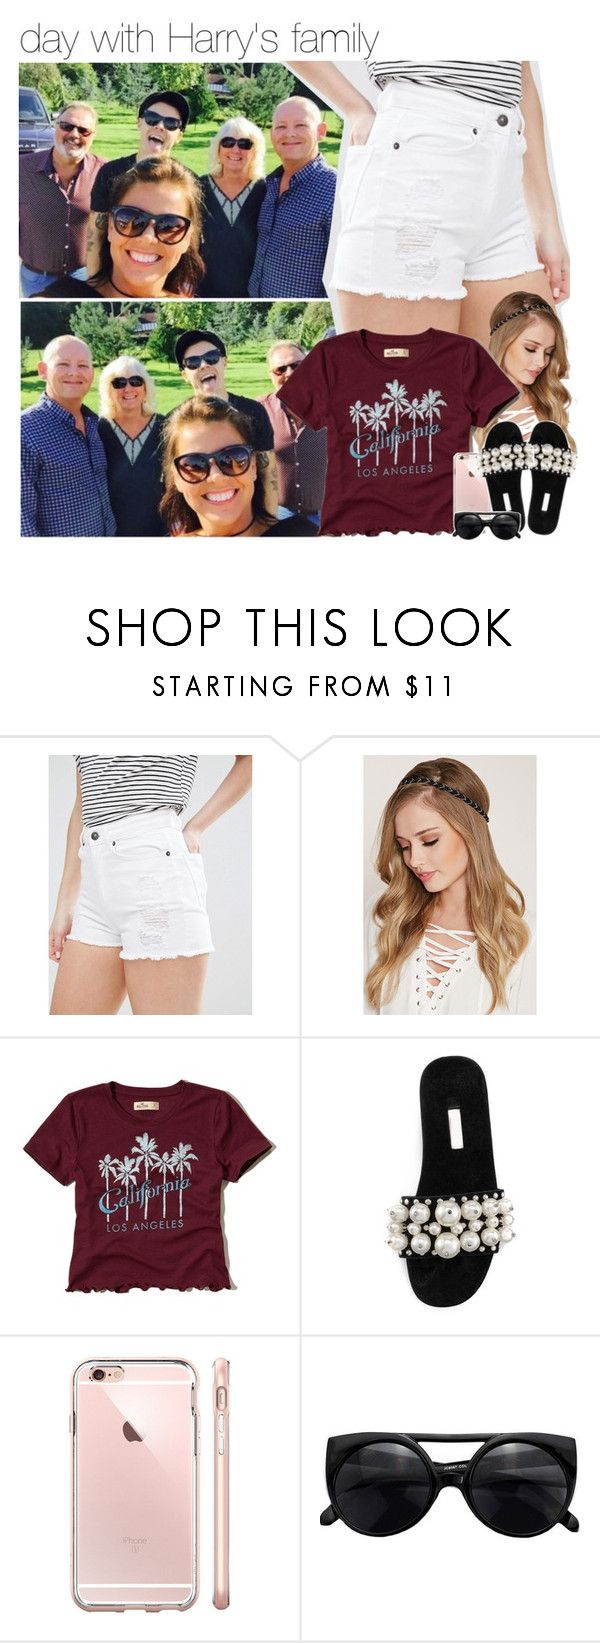 """day with Harry's family"" by dipx1d ❤ liked on Polyvore featuring Vero Moda, Forever 21, Hollister Co. and Miu Miu"